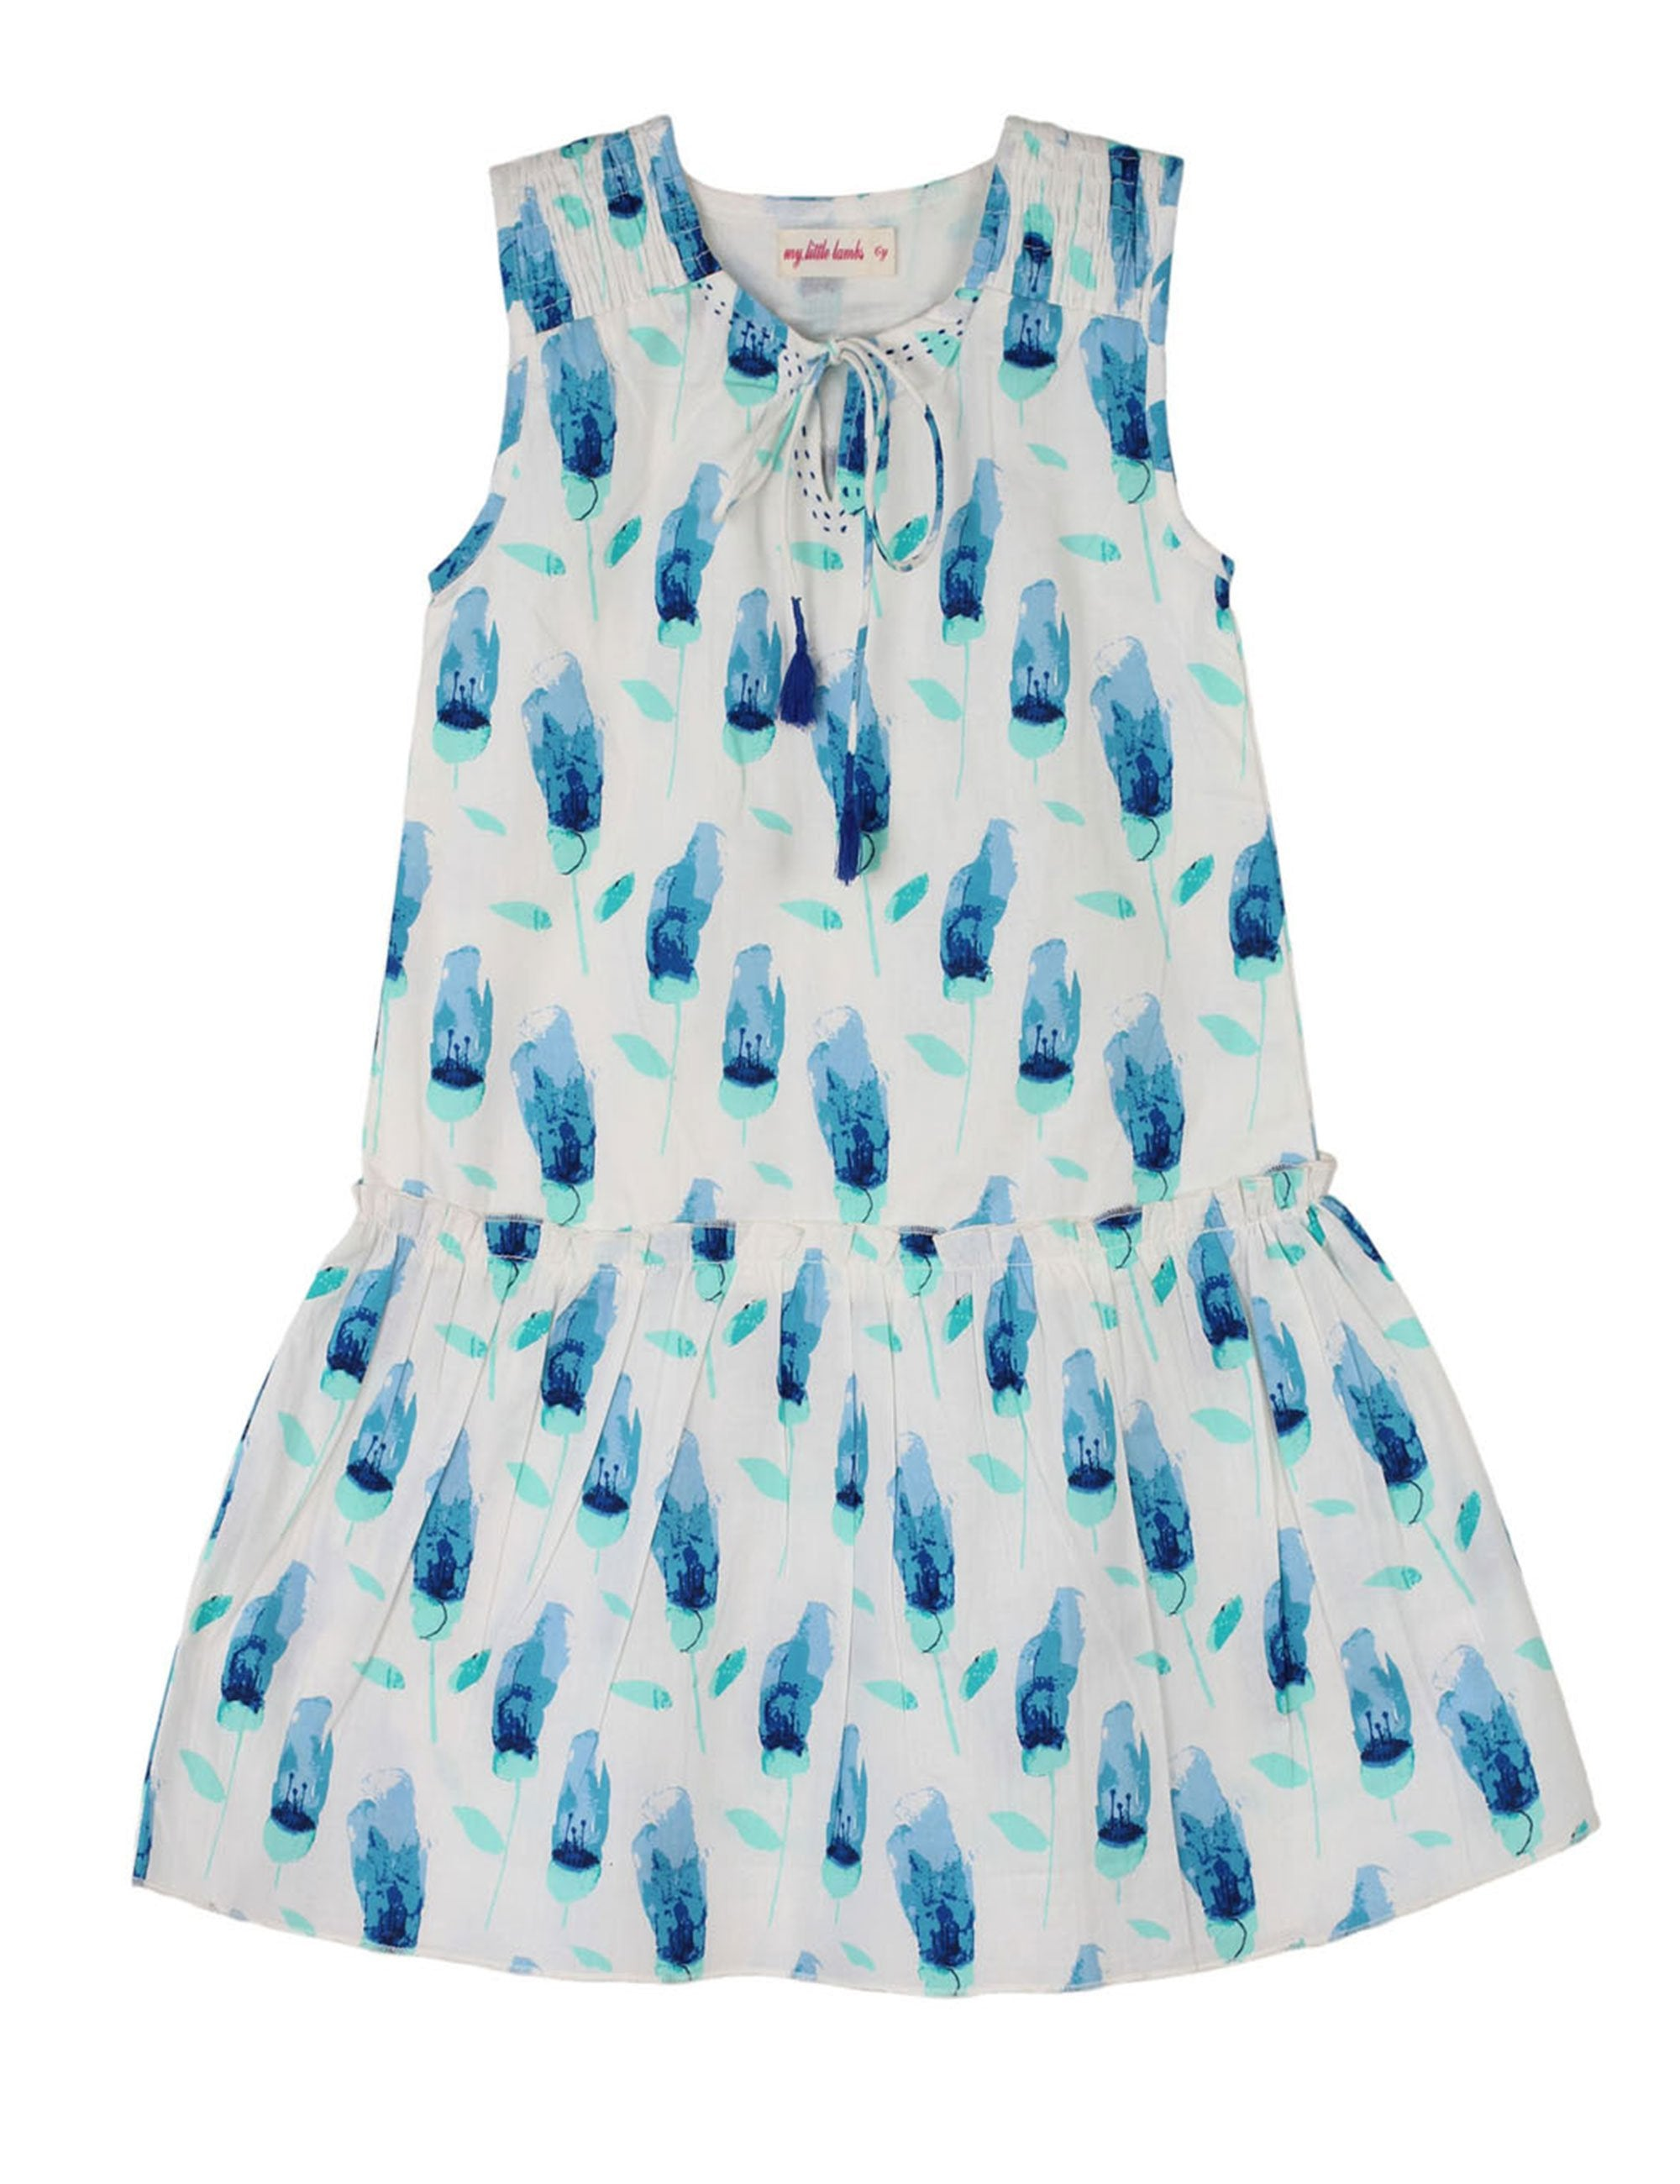 Printed Drop Waist Dress in White & Blue Colour for Girls